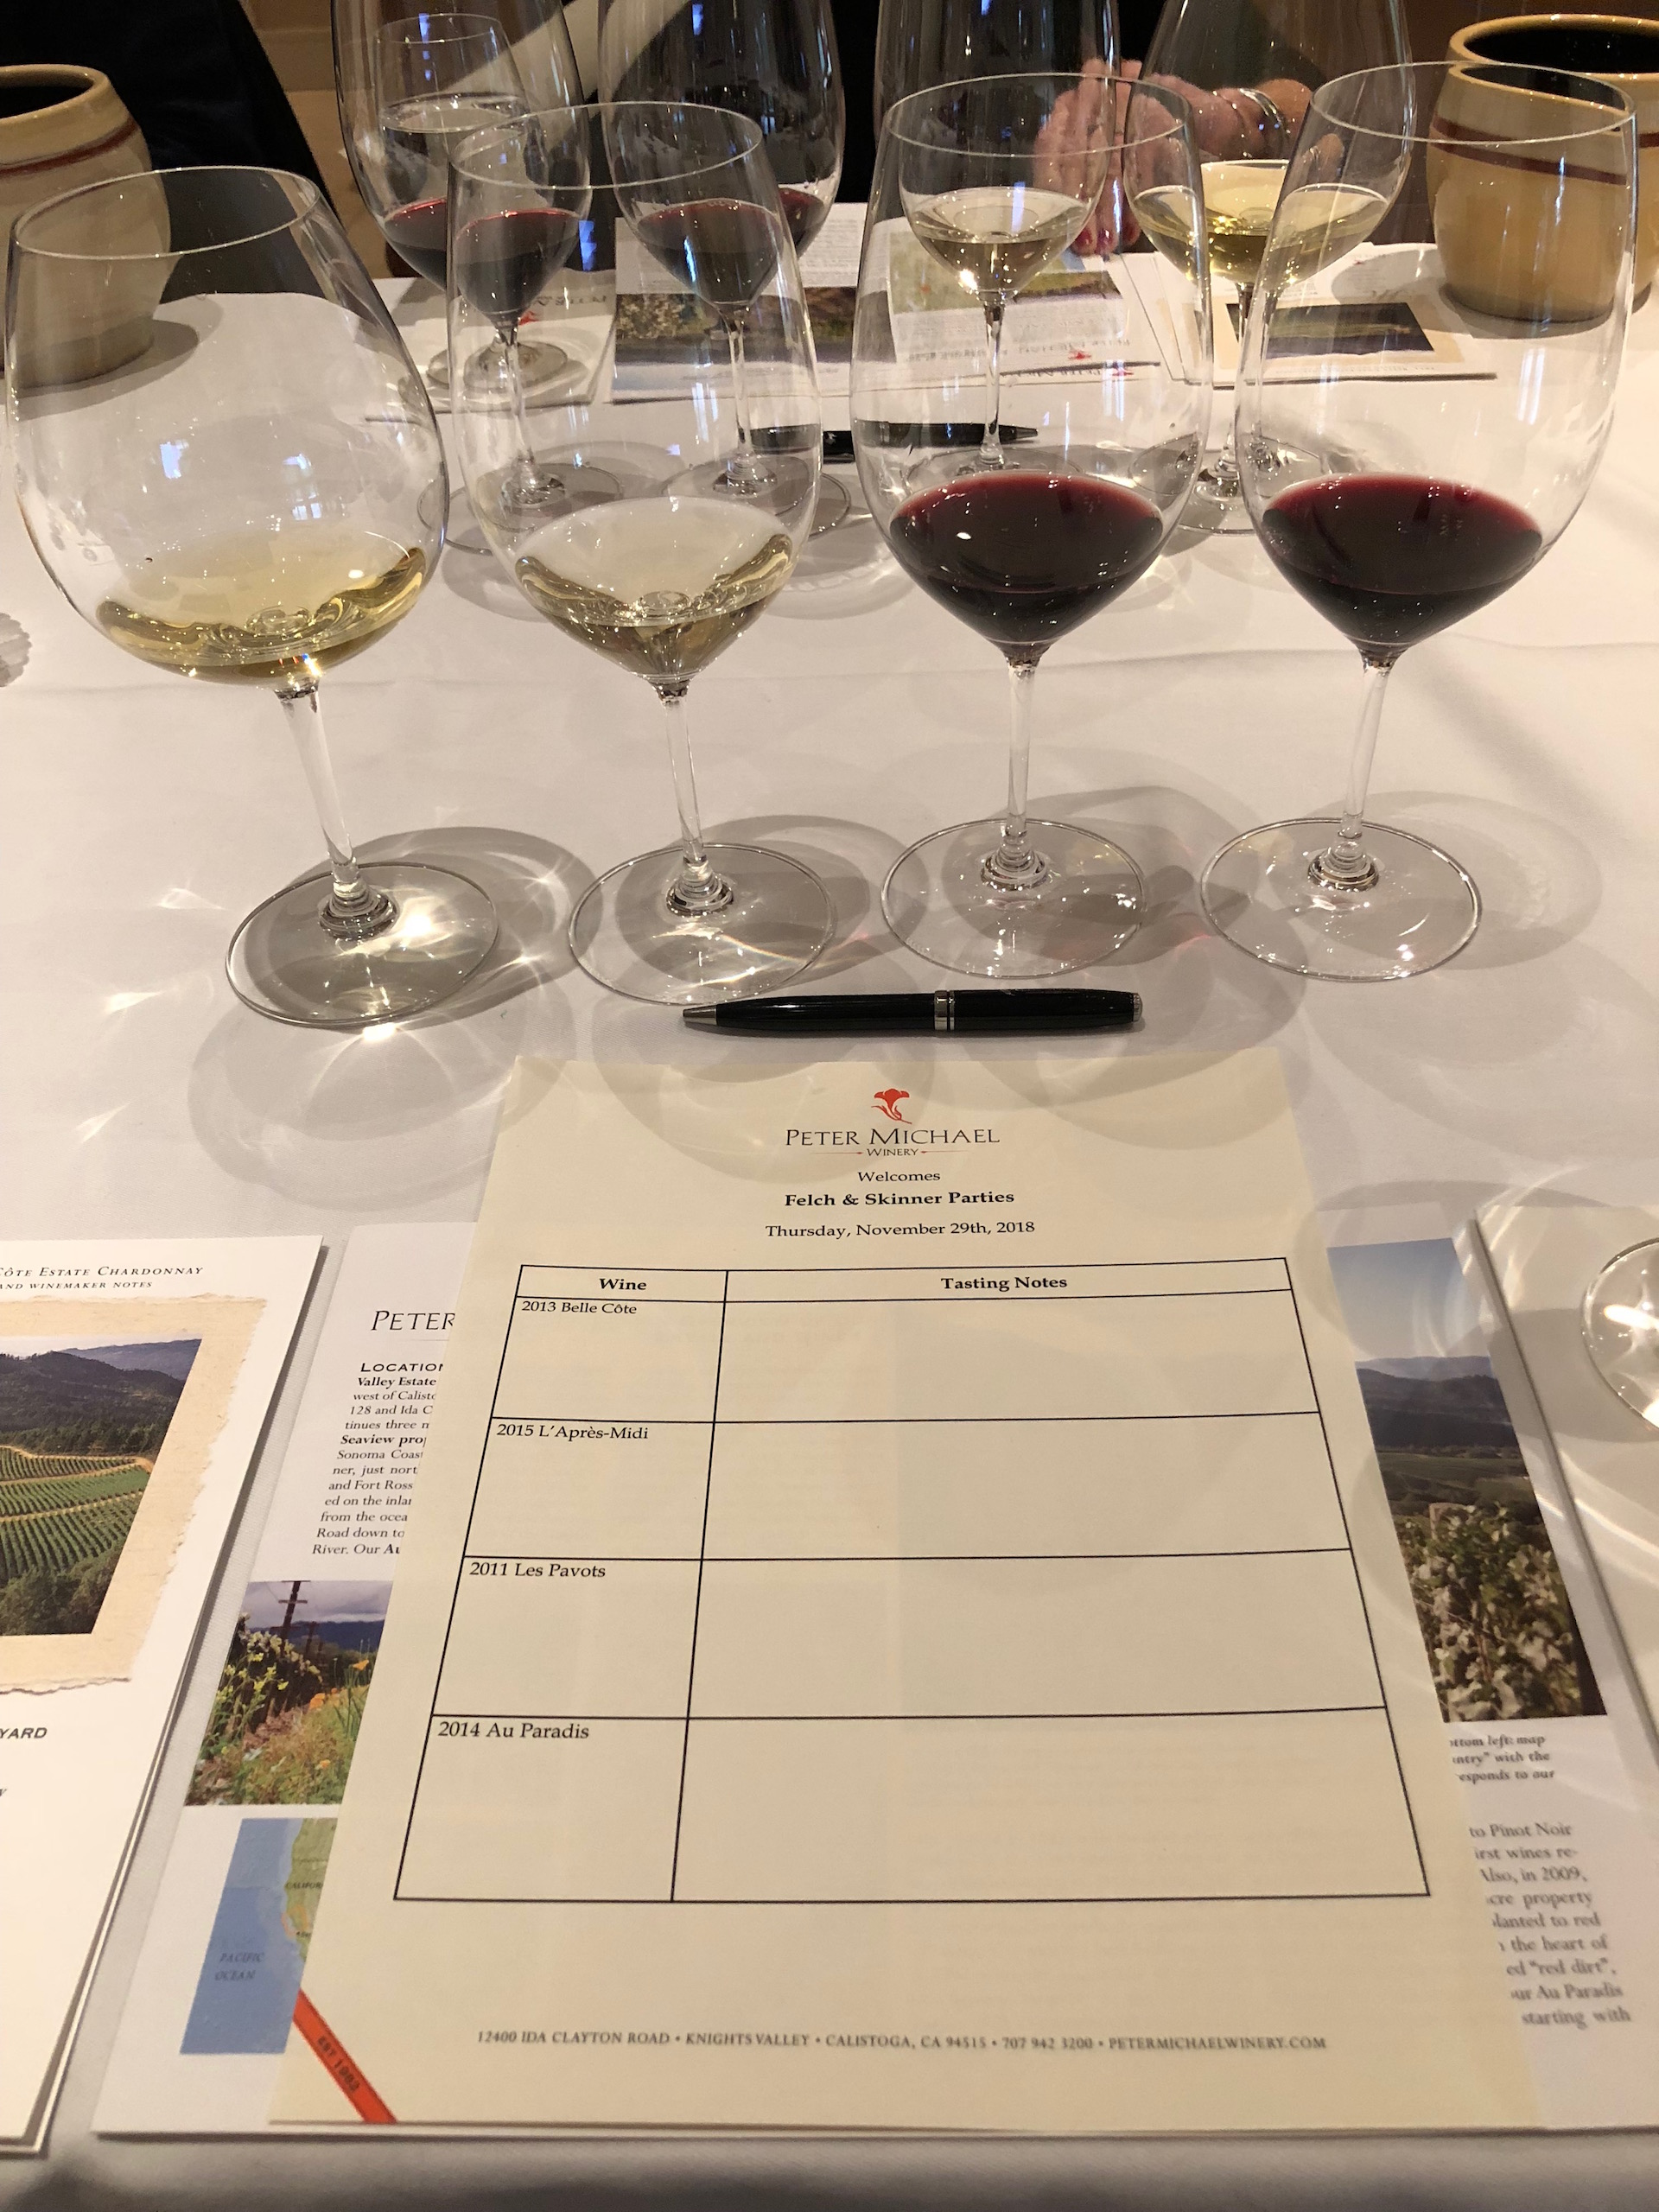 Time for some tasting...and tasting notes...of the Peter Michael wines